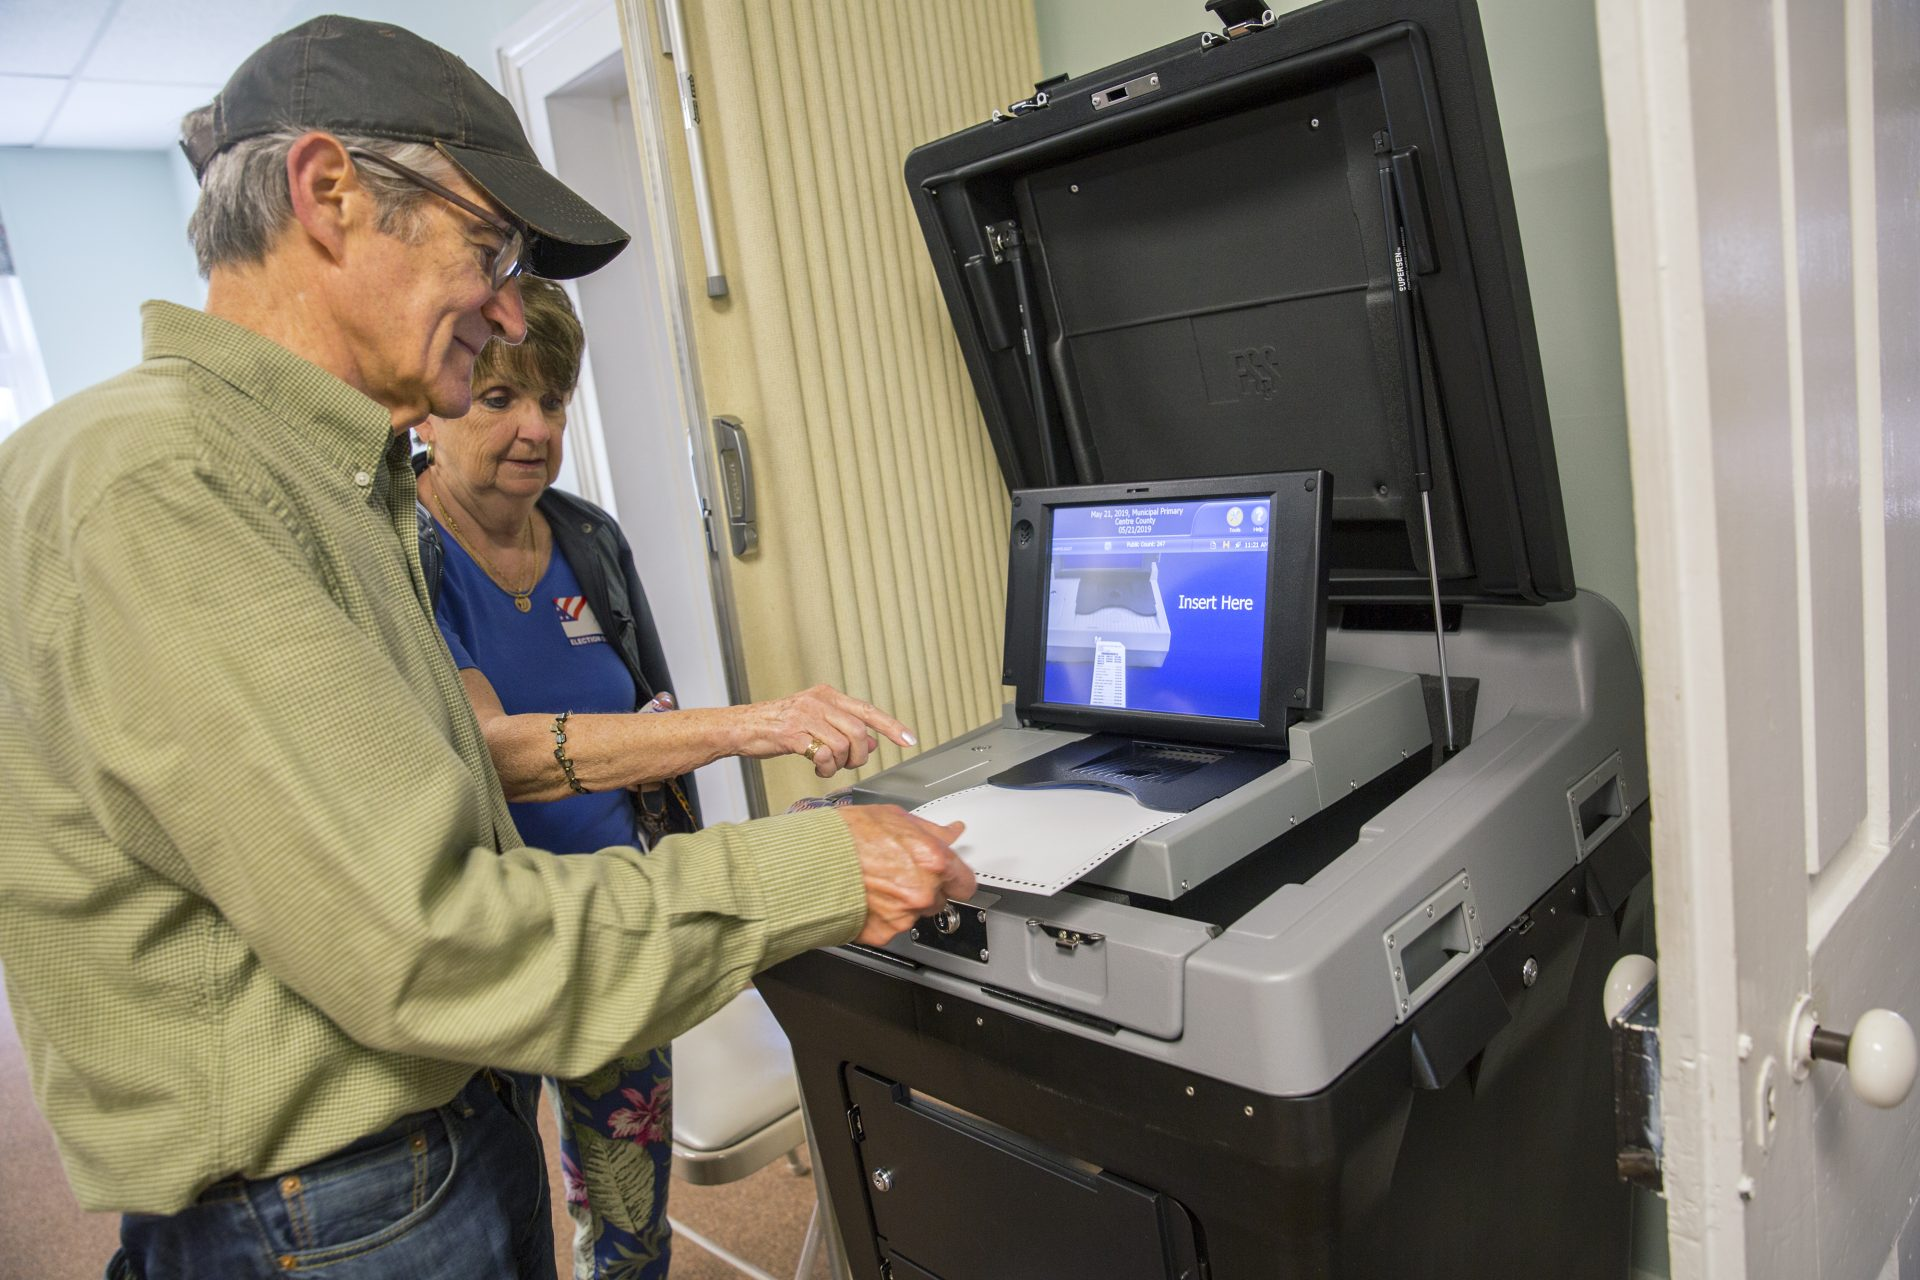 Pa. spends double when they use touch-screen voting machines